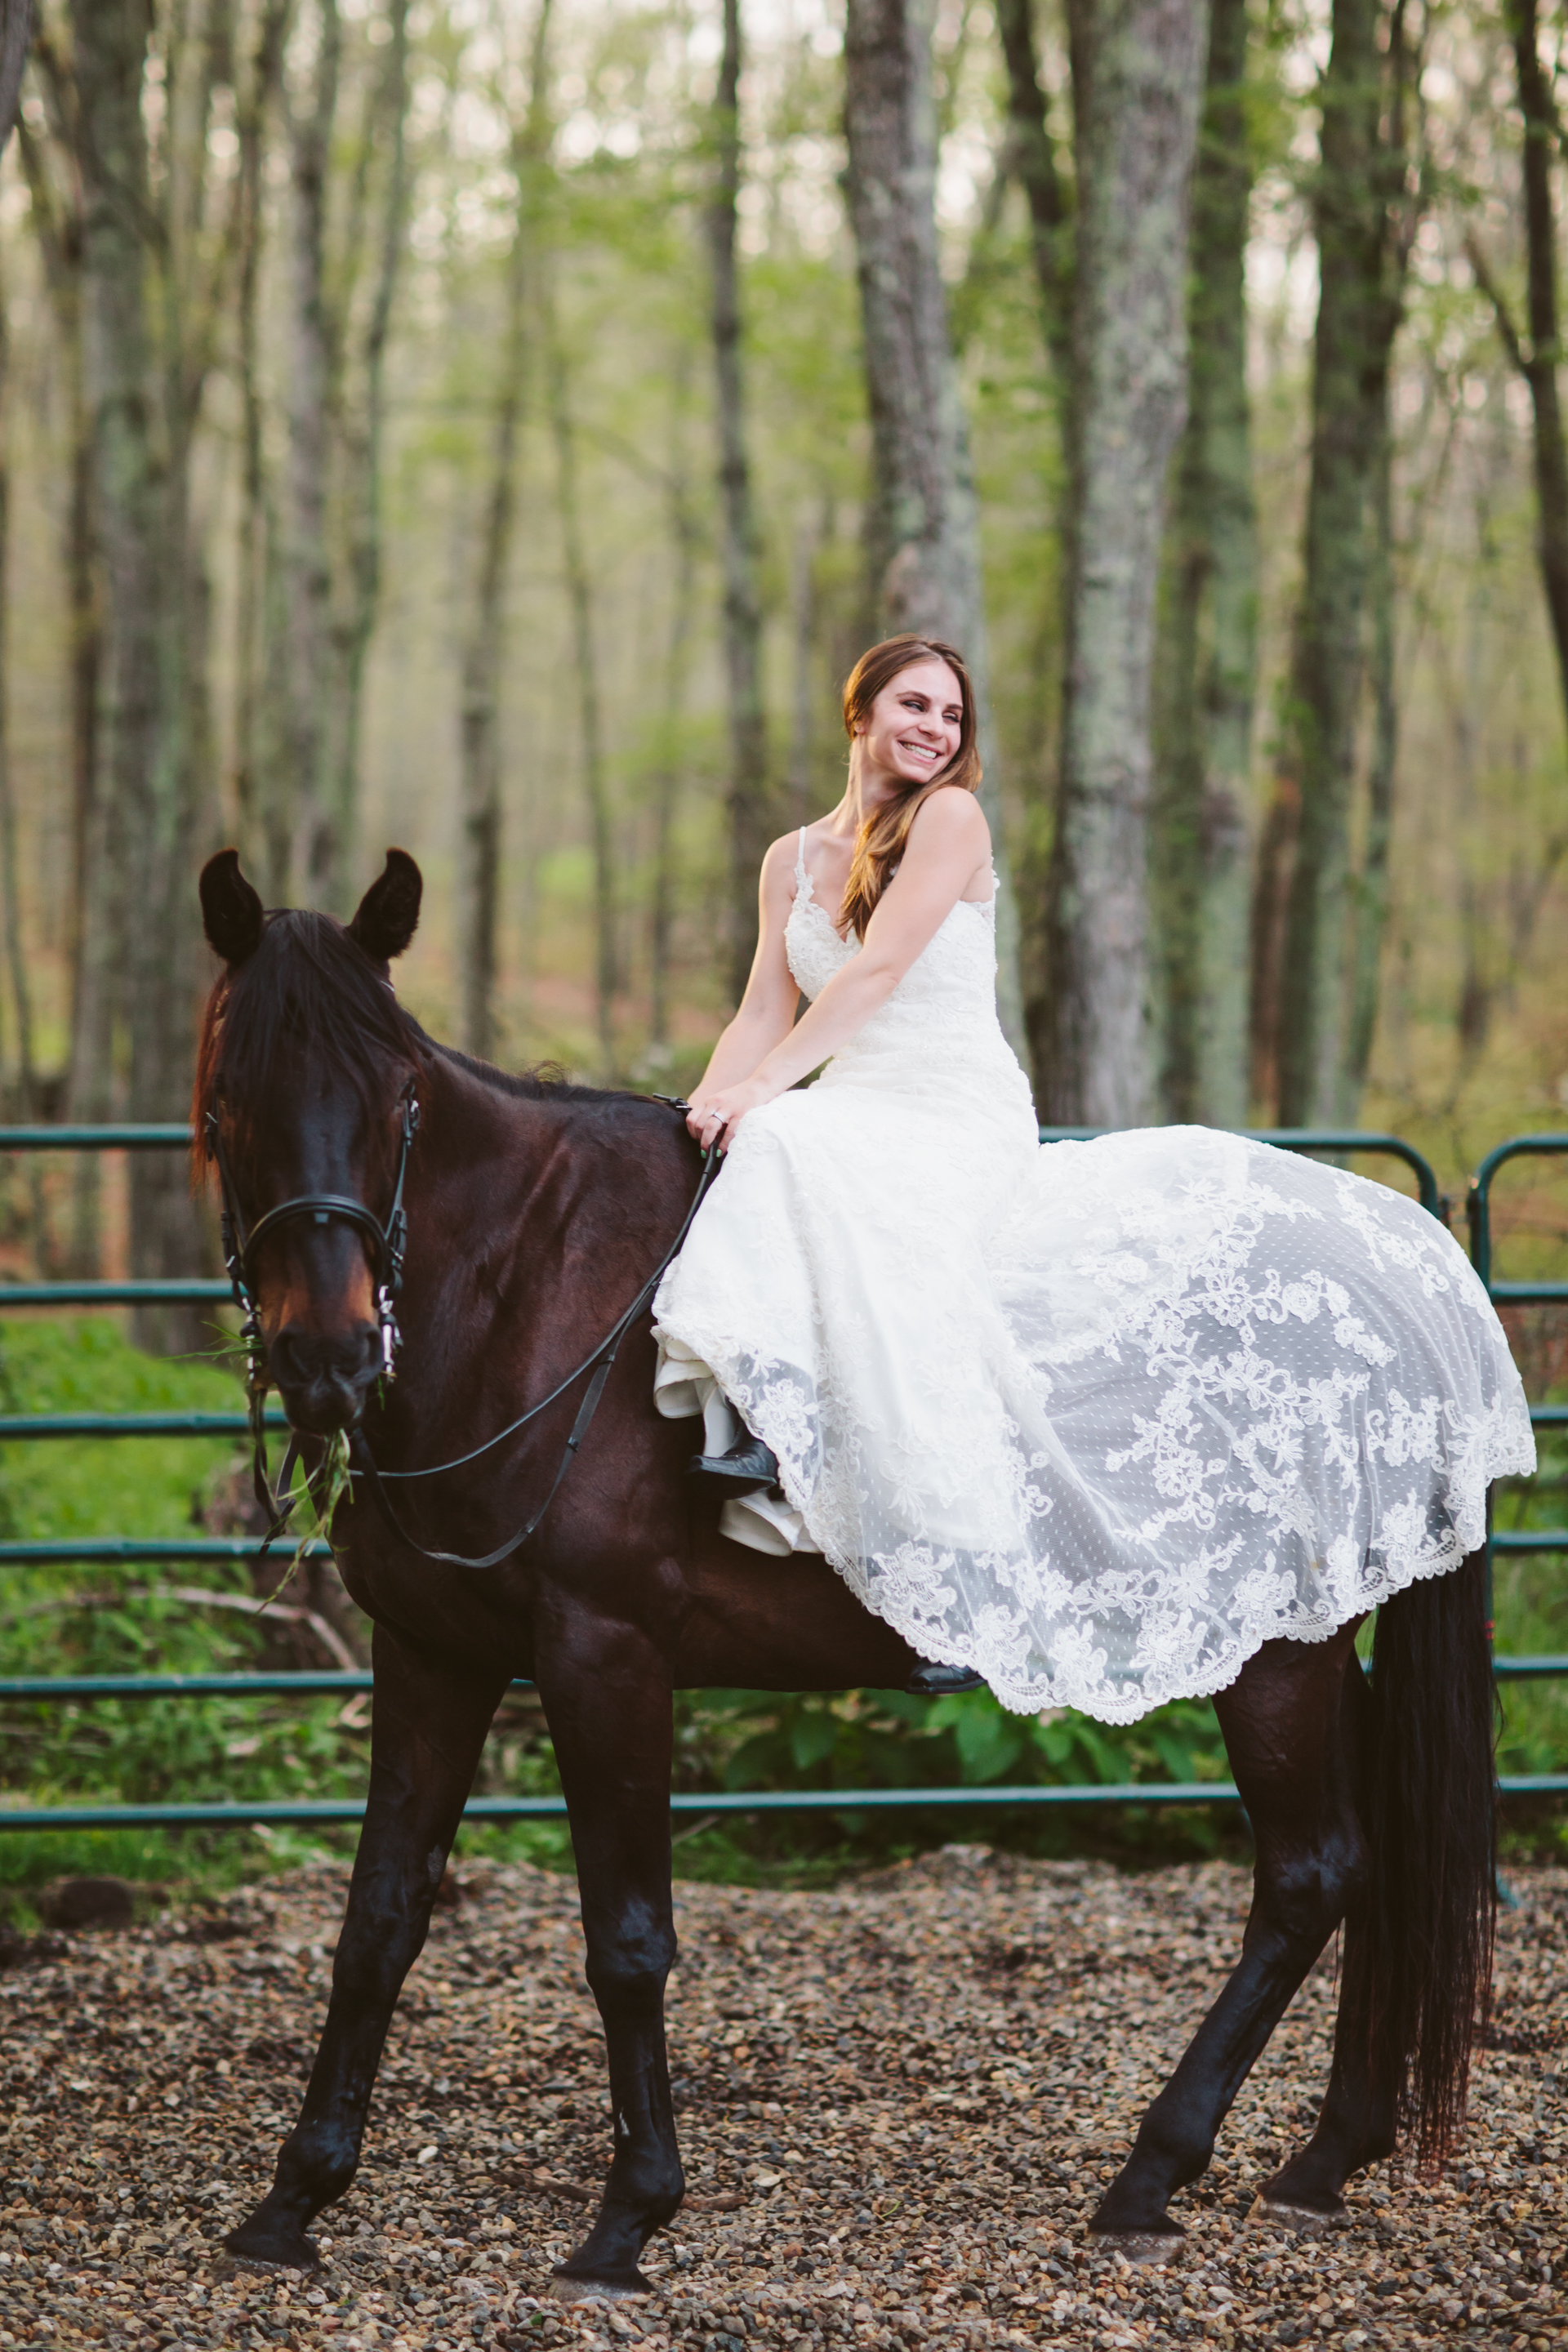 Photographybyamandamorgan-horse-wedding-bride-9.jpg